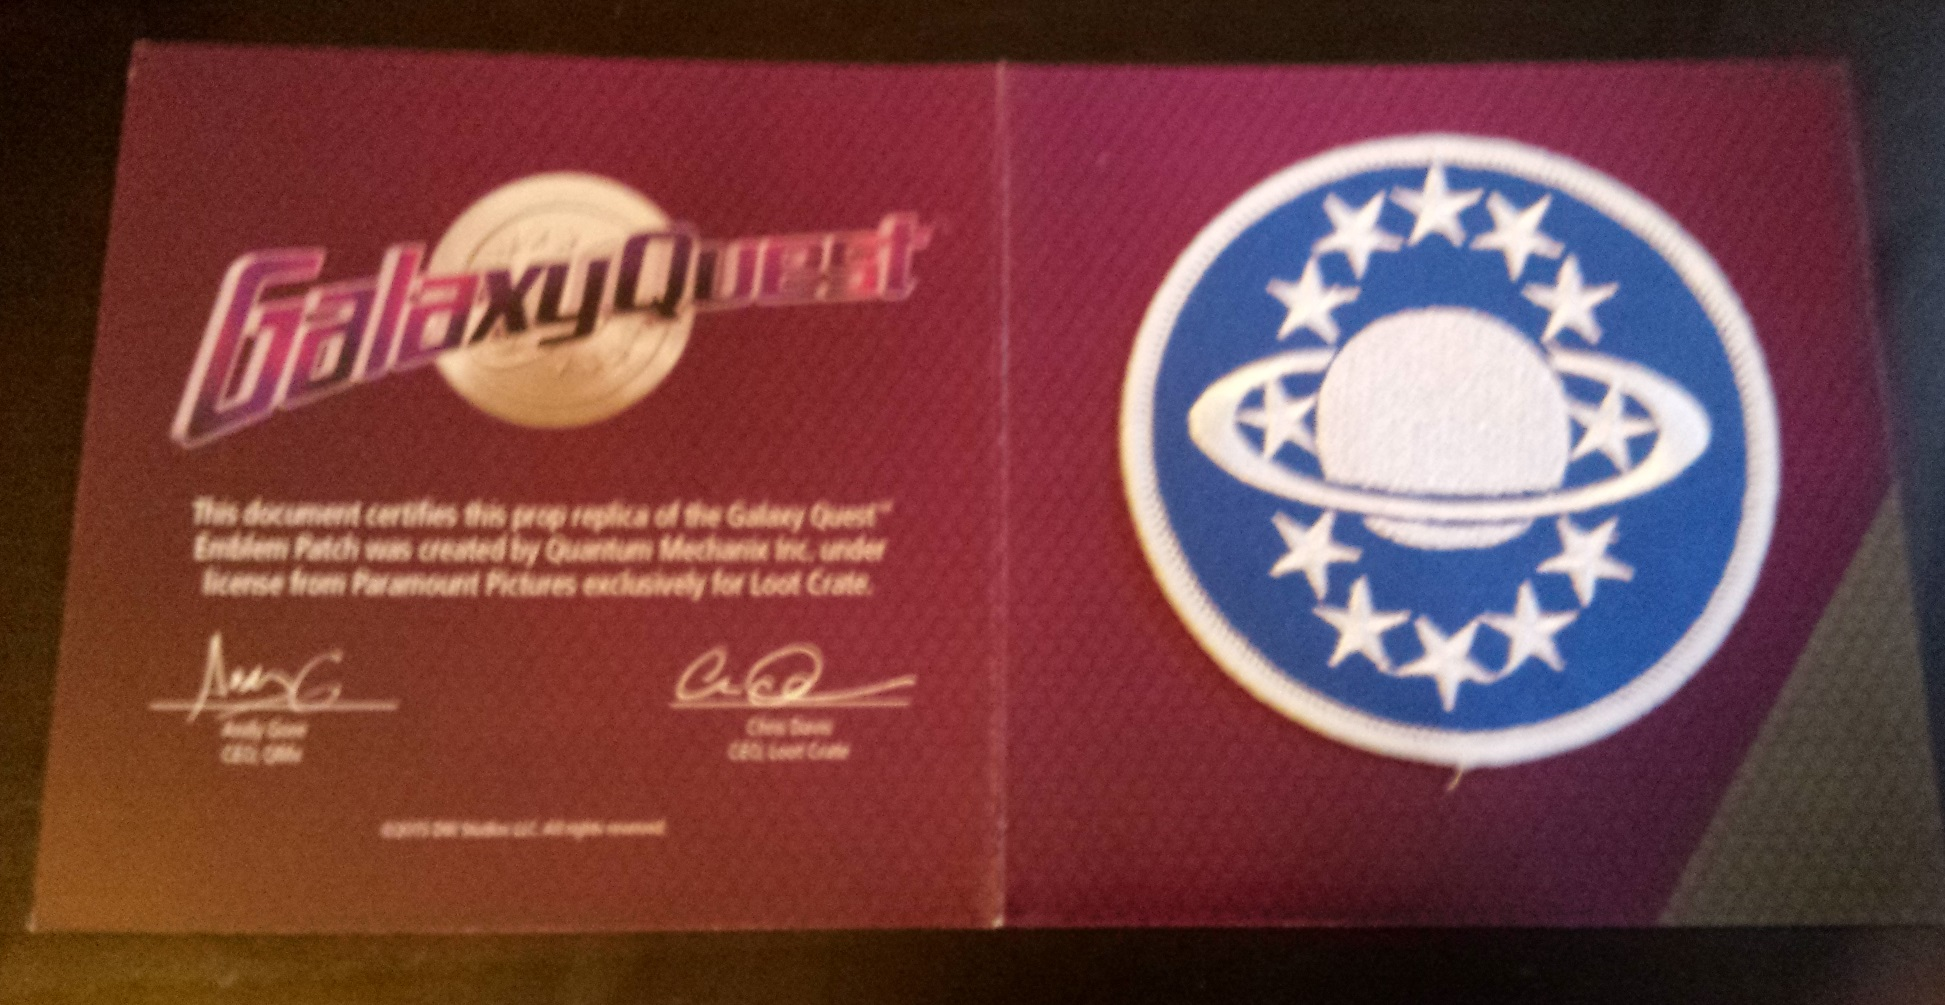 Galaxy quest, loot crate discovery